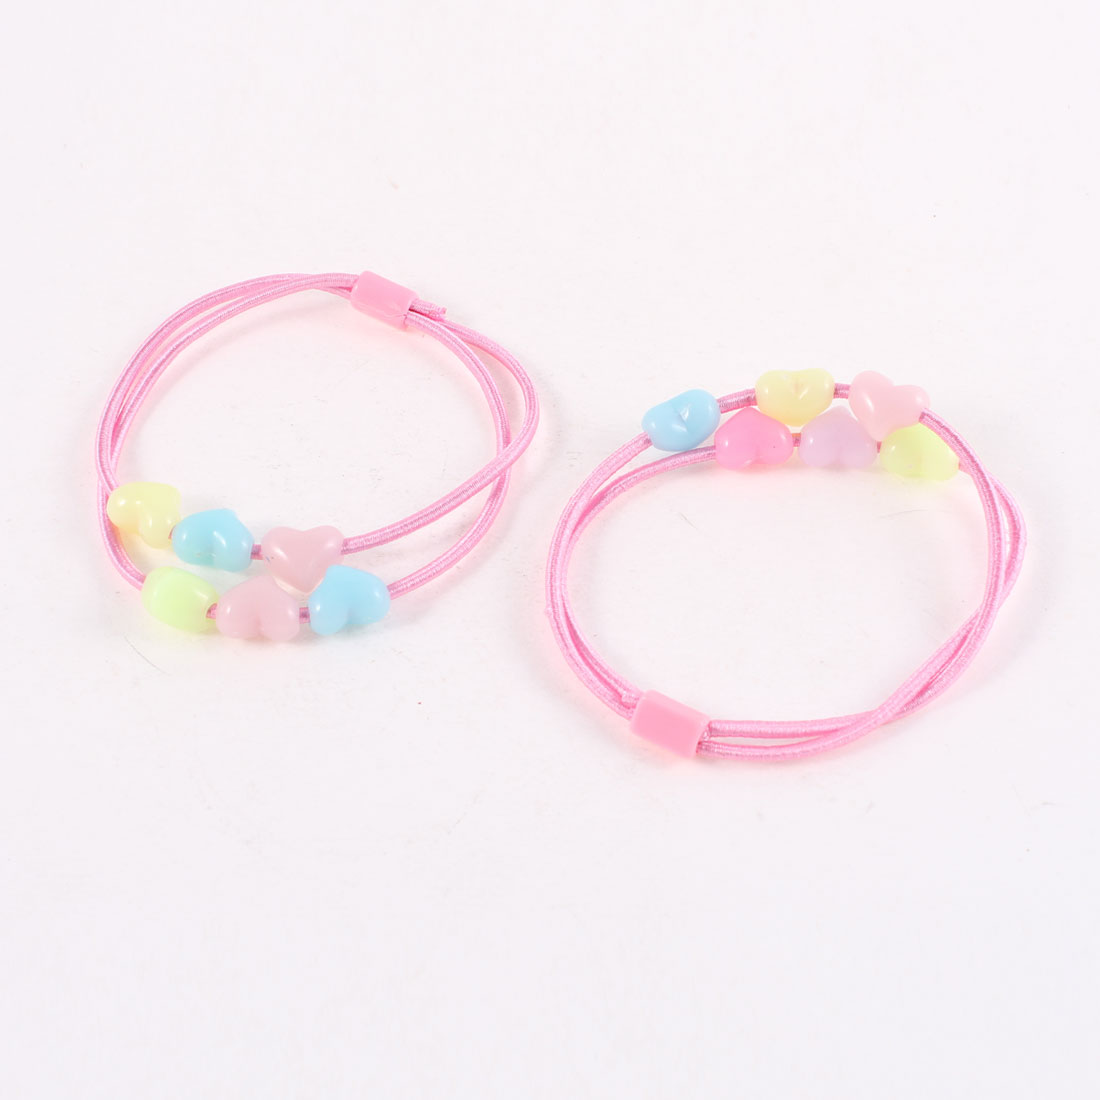 Pair Light Blue Pink Plastic Hearts Detailing Elastic Ponytail Hair Holder